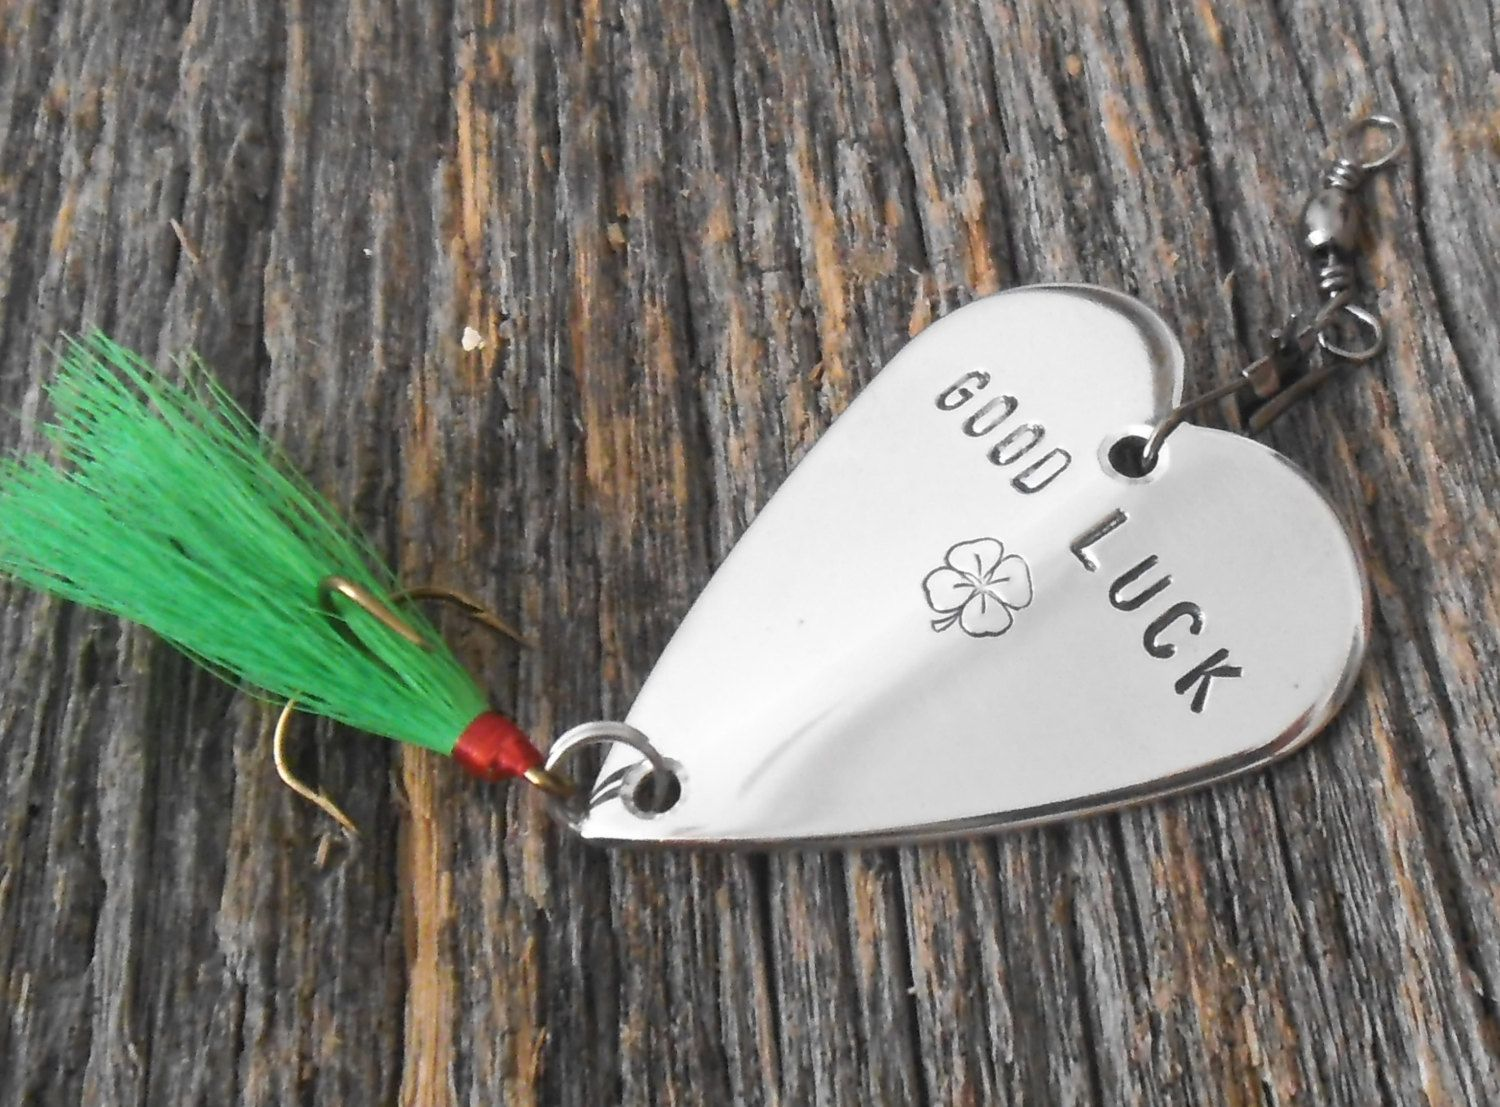 lucky irish wedding favor fishing lure good luck gift irish guy gift graduation boyfriend st patricks day ireland dad husband anniversary